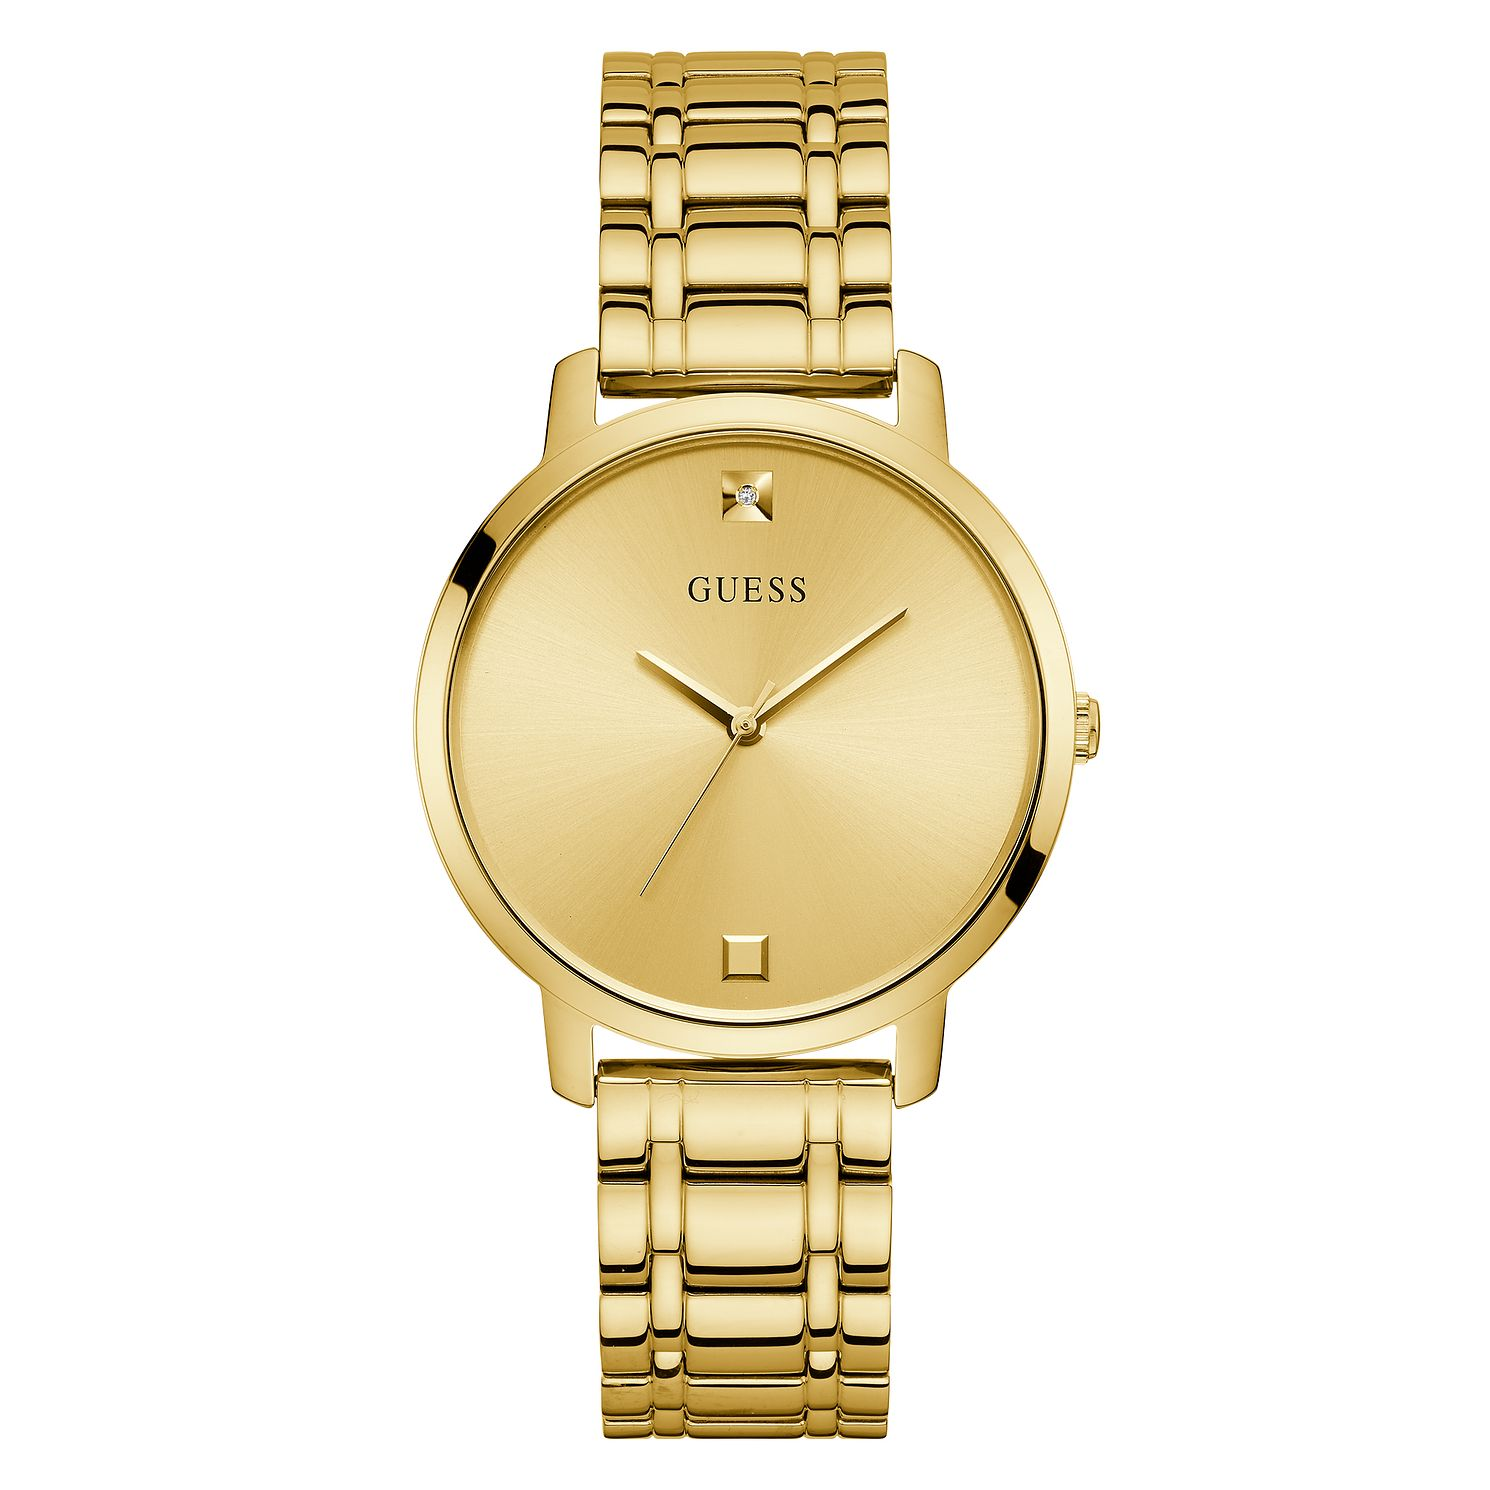 Guess Nova Crystal Ladies' Yellow Gold Tone Bracelet Watch - Product number 5191106